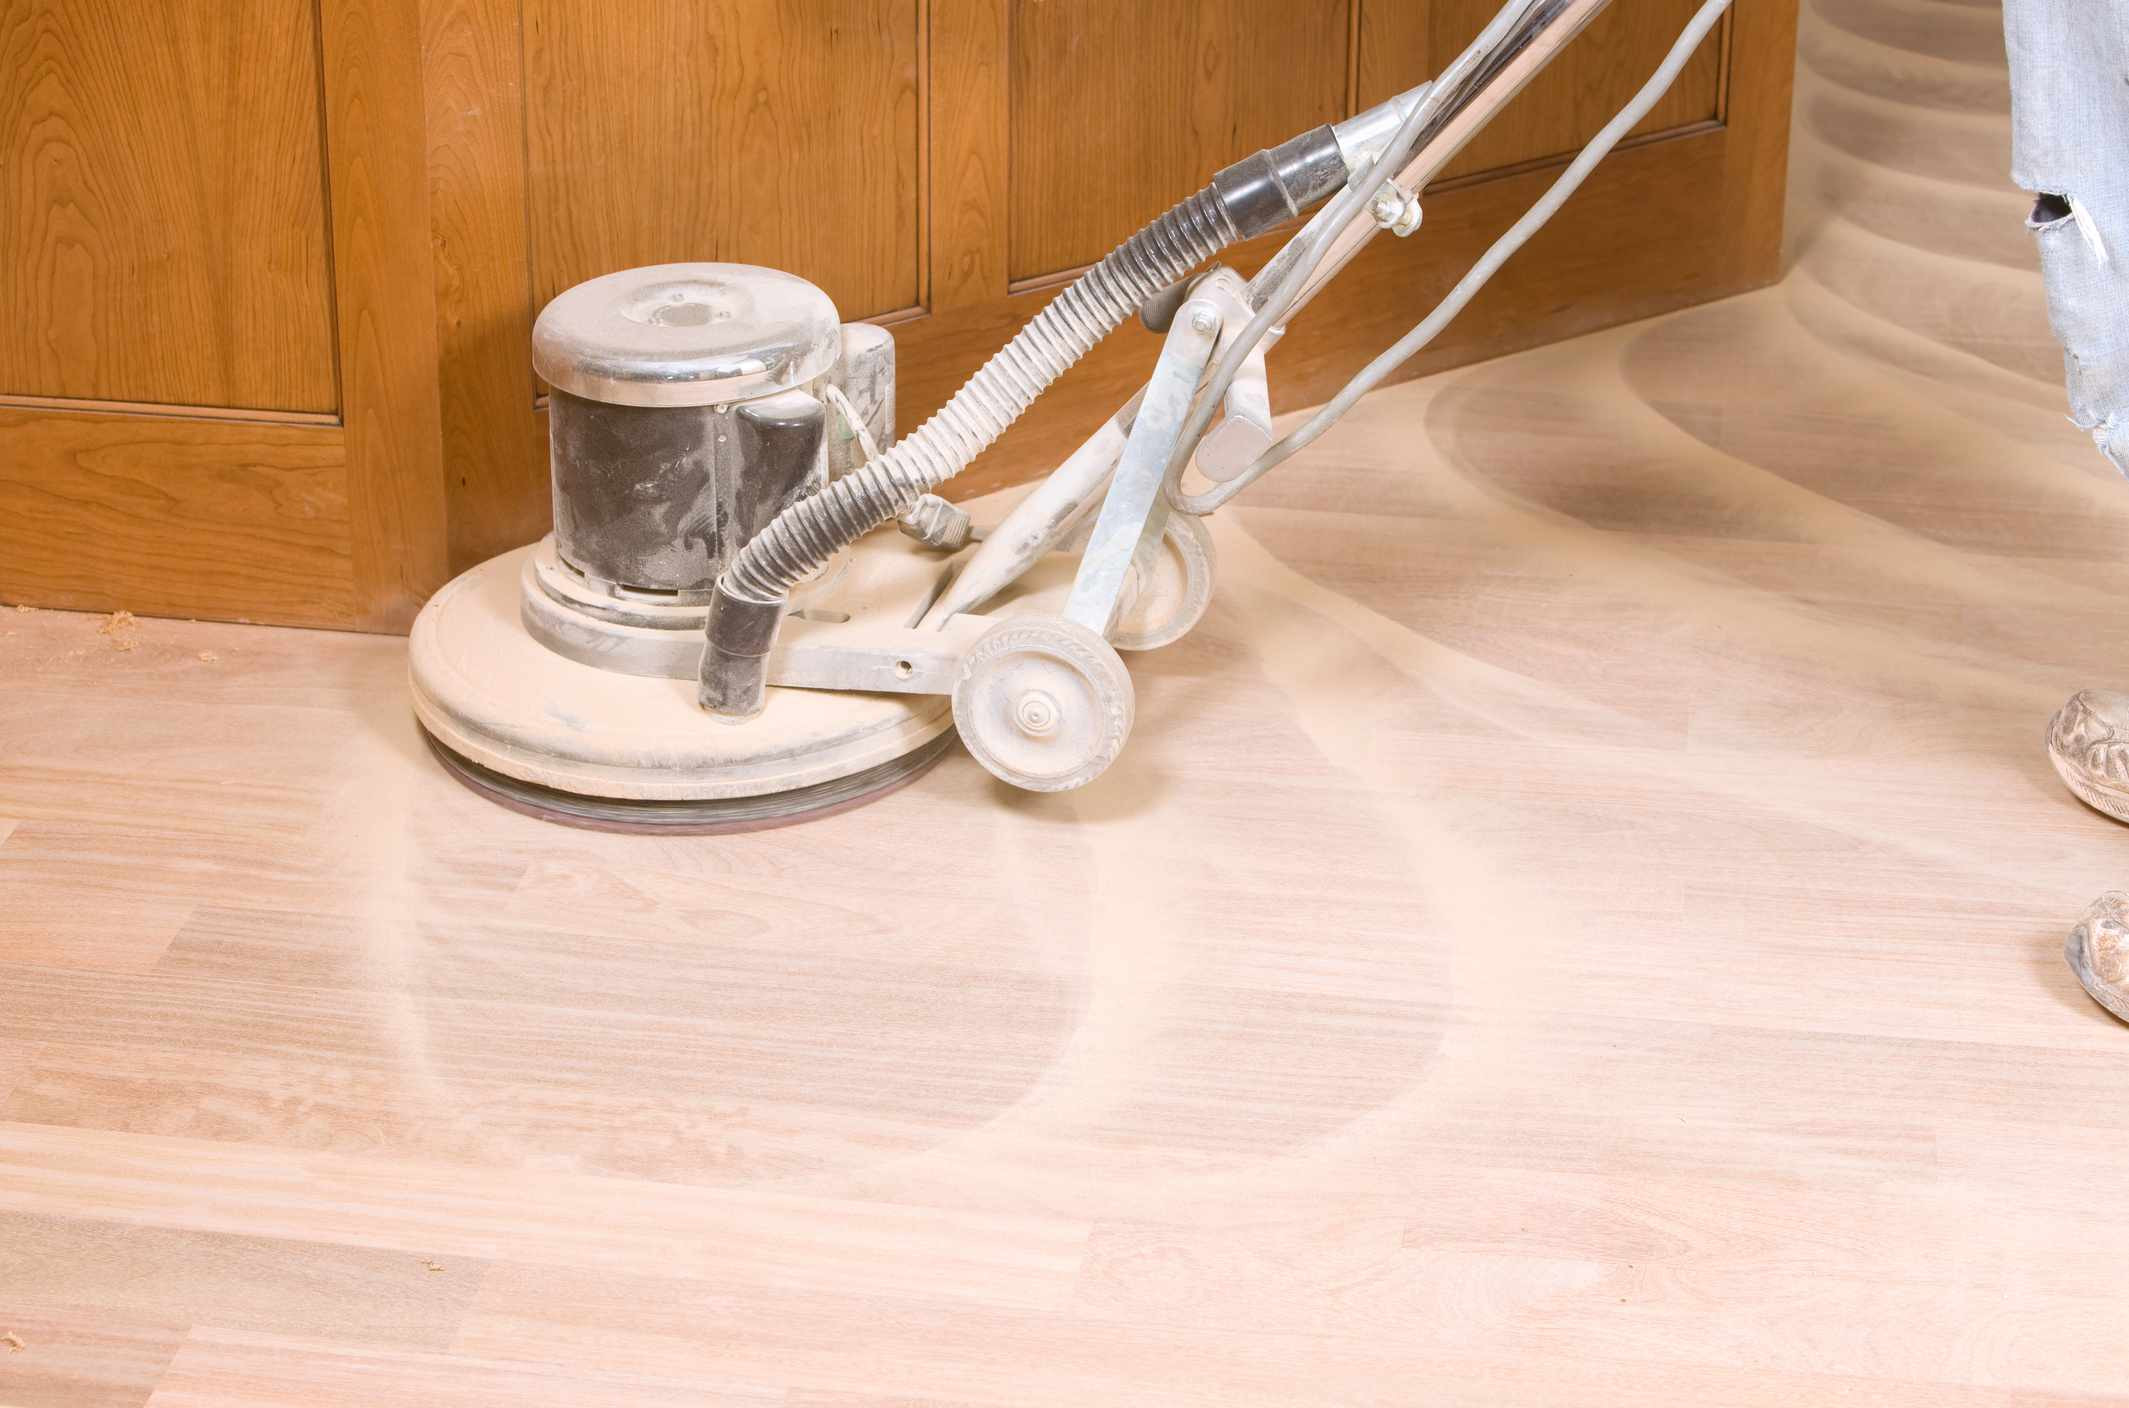 sanding and refinishing hardwood floors diy of how to sand hardwood floors with regard to gettyimages 183768766 587b01a45f9b584db3a5315f